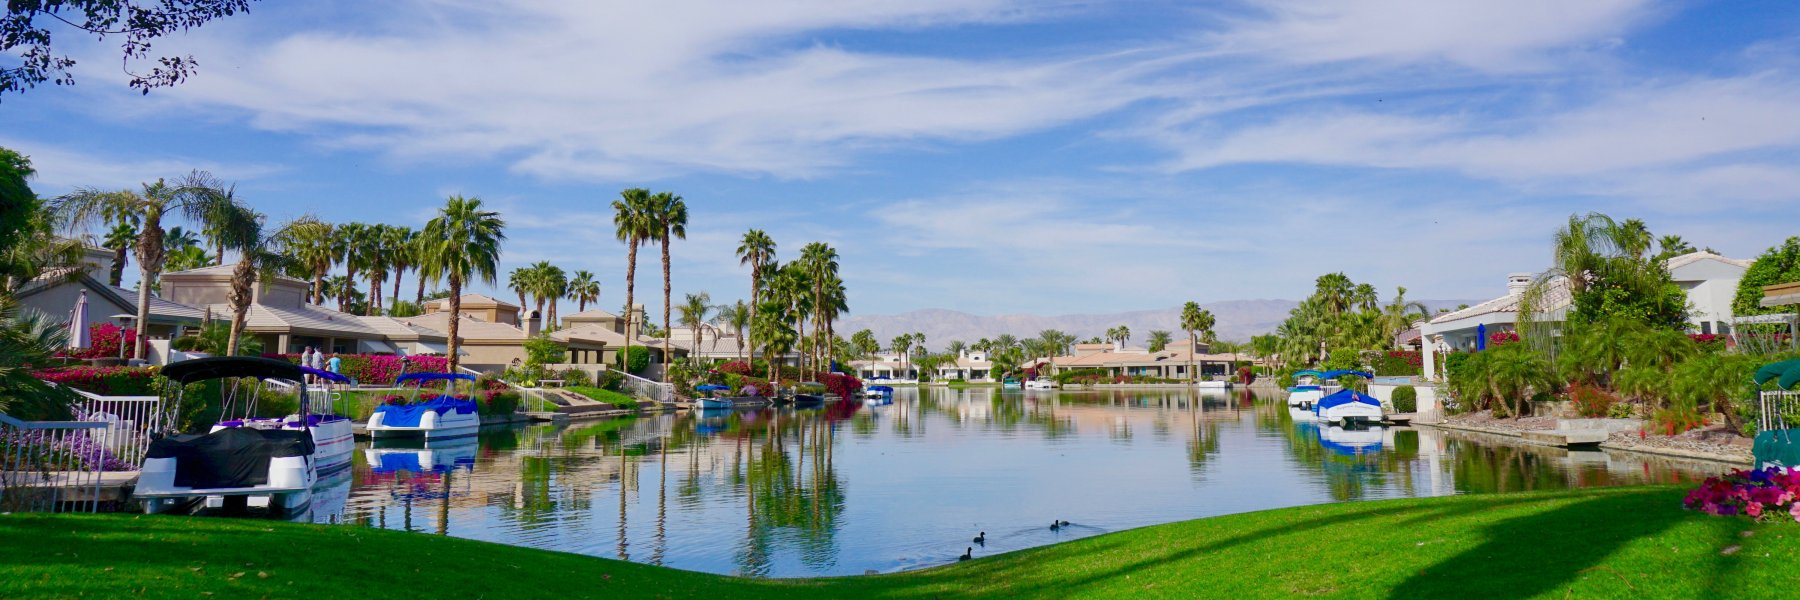 Lake La Quinta is a community of homes in La Quinta California